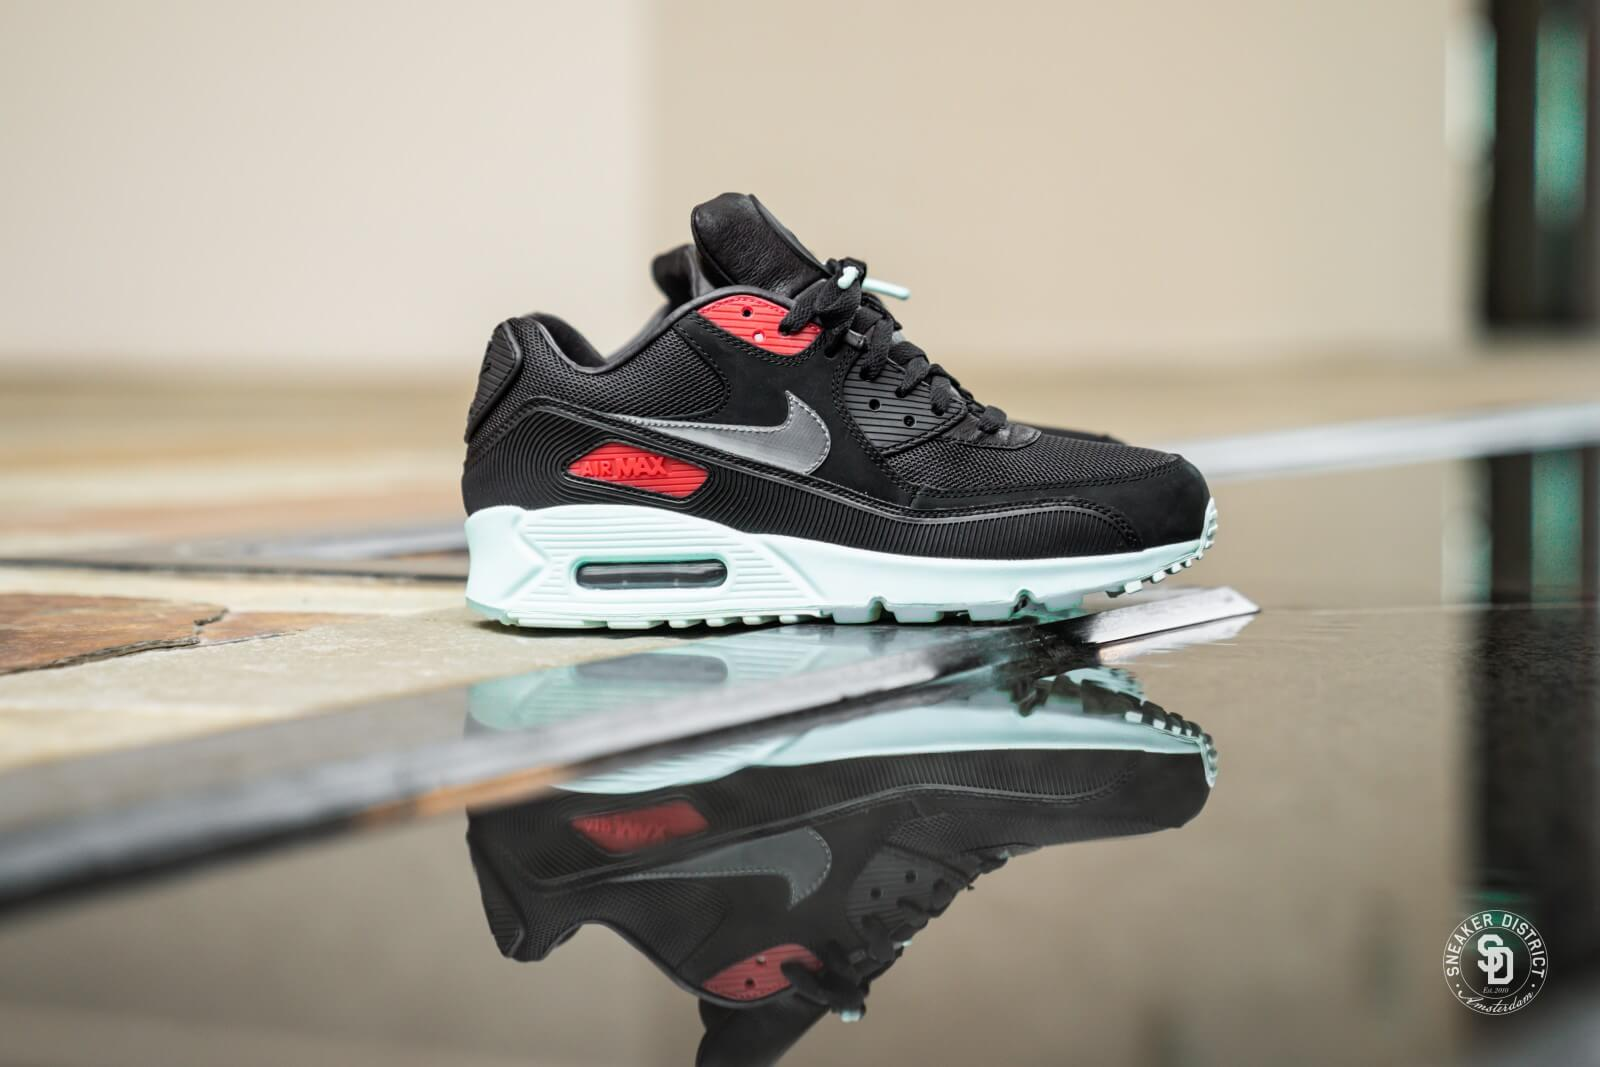 Nike Air Max 90 Premium Vinyl BlackCool Grey Teal Tint CK0902 001